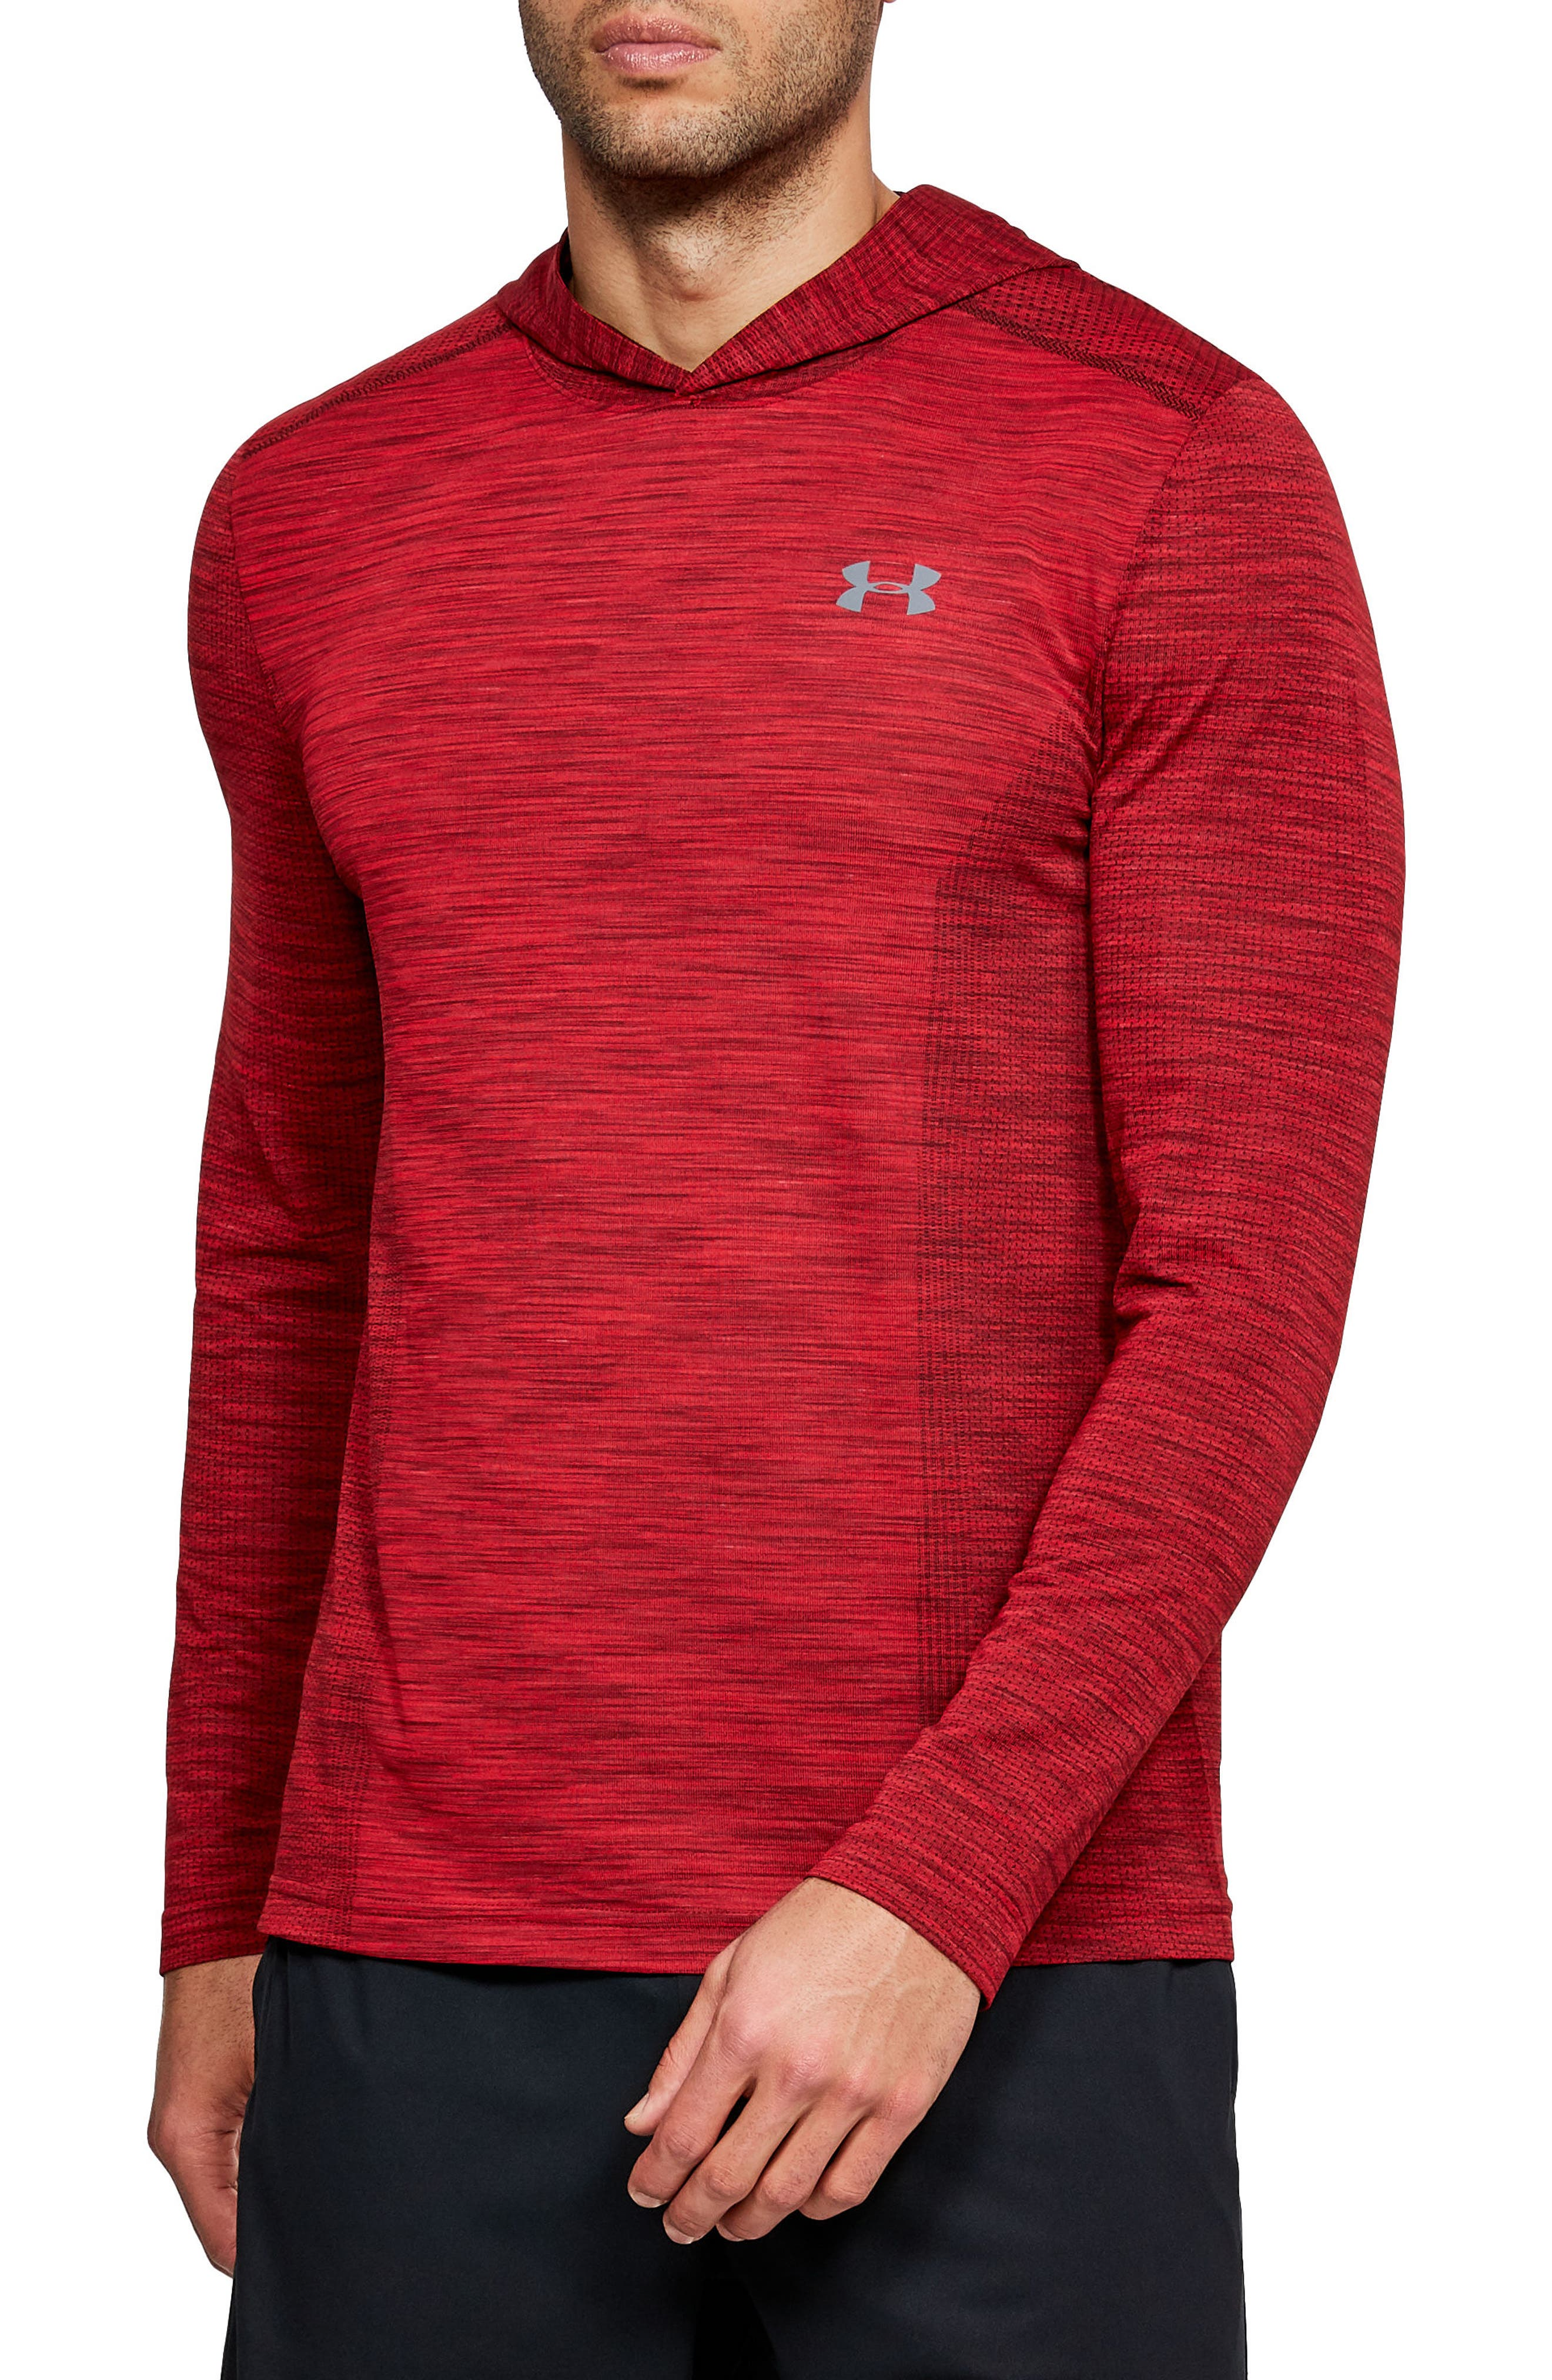 Main Image - Under Armour Threadbone Fitted Seamless Hoodie